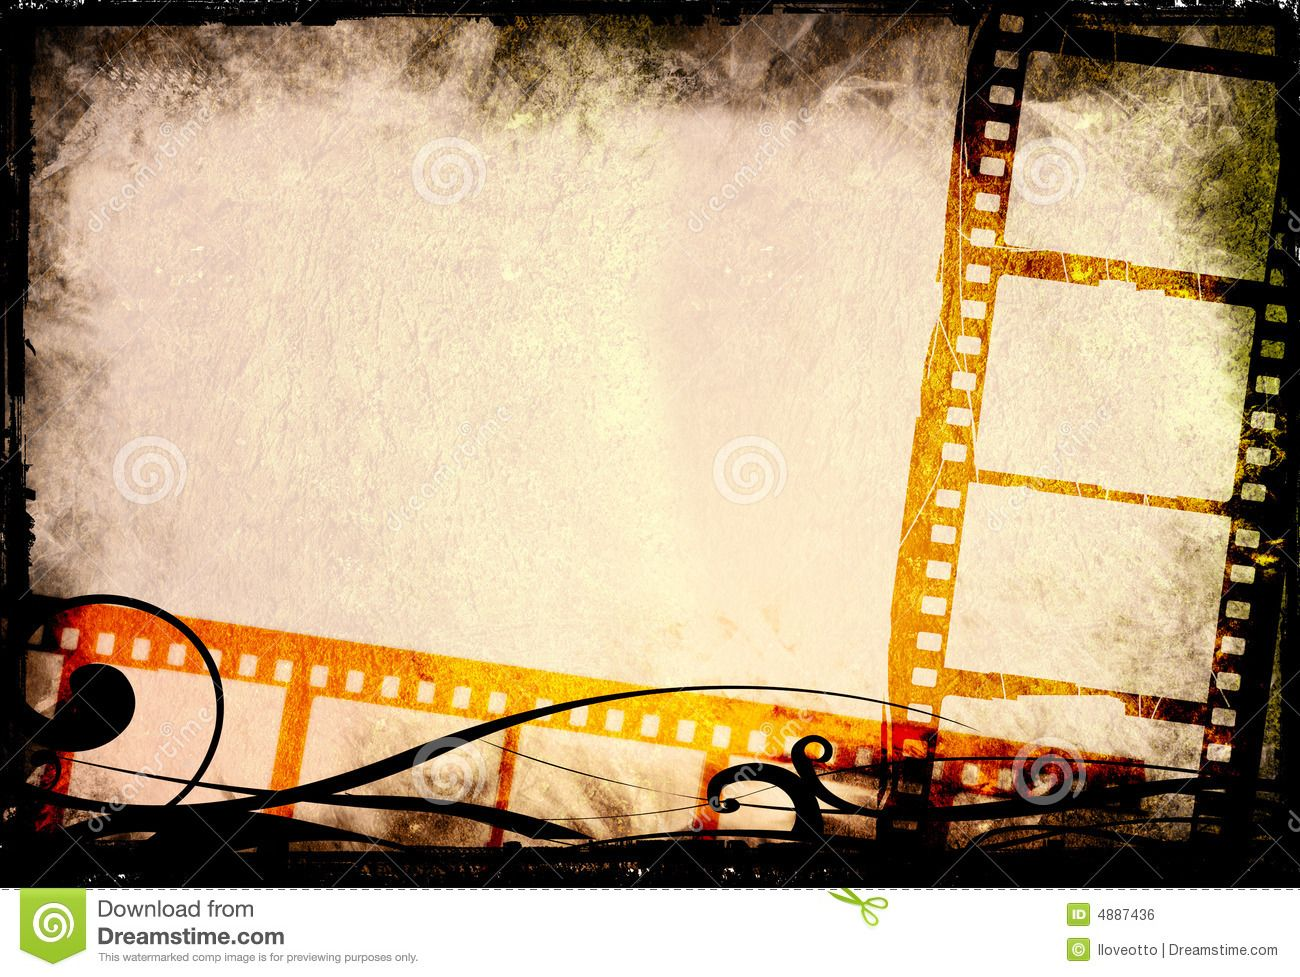 movie strip background - Google Search | Spraoi na mi | Pinterest ...